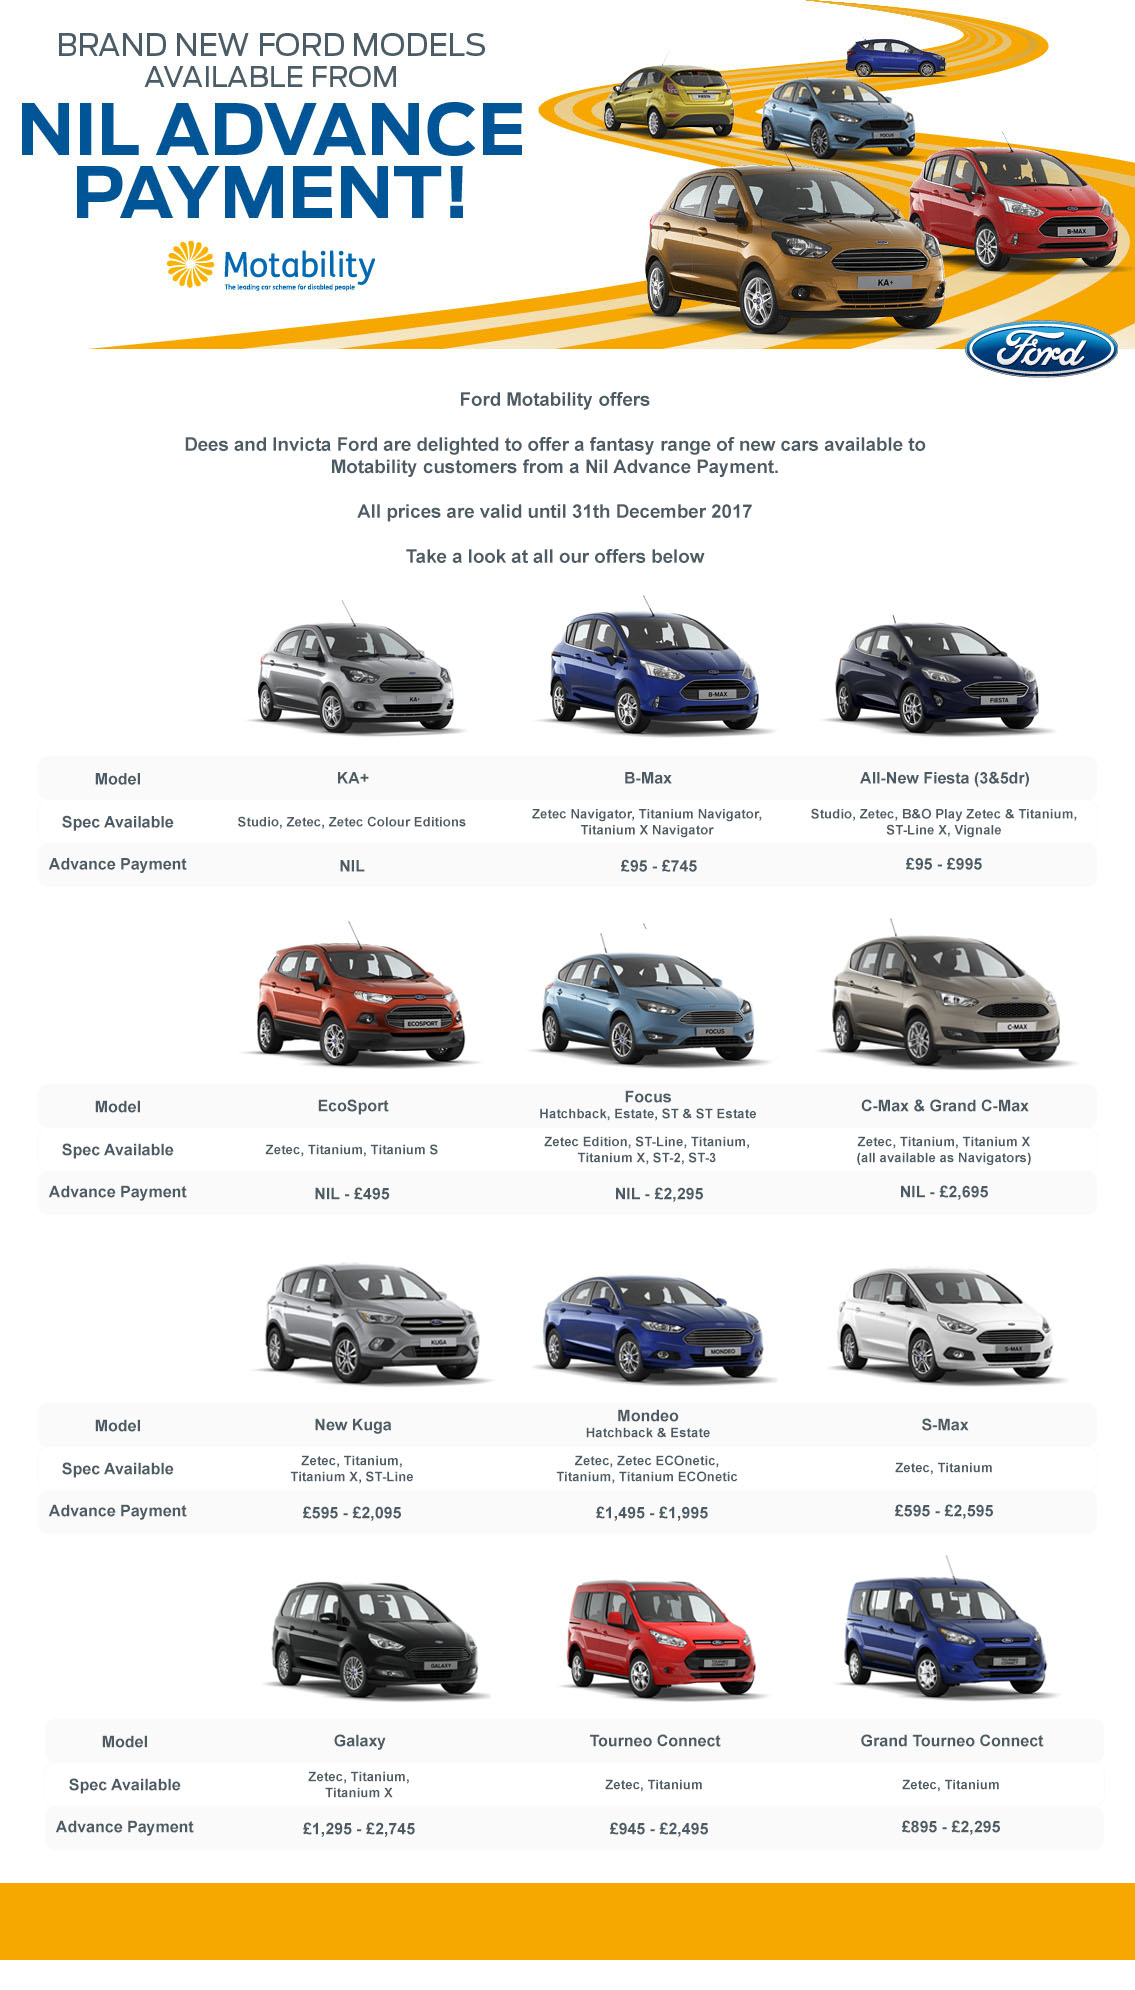 Ford Motability Offers Motorparks